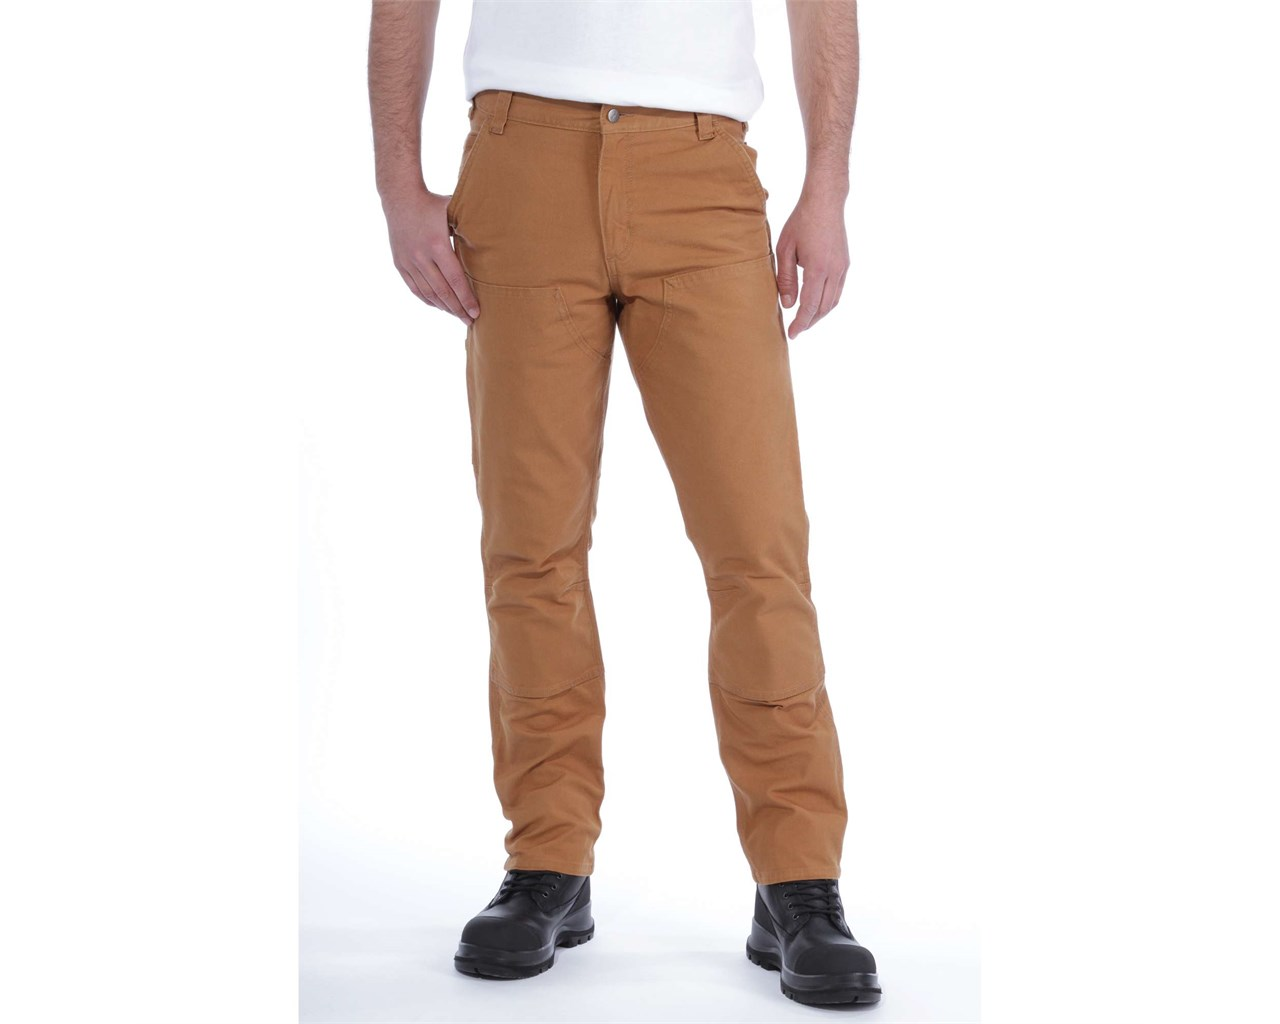 Carhartt Stretch Duck Double Front Trousers, Carhartt Brown, W38/L32